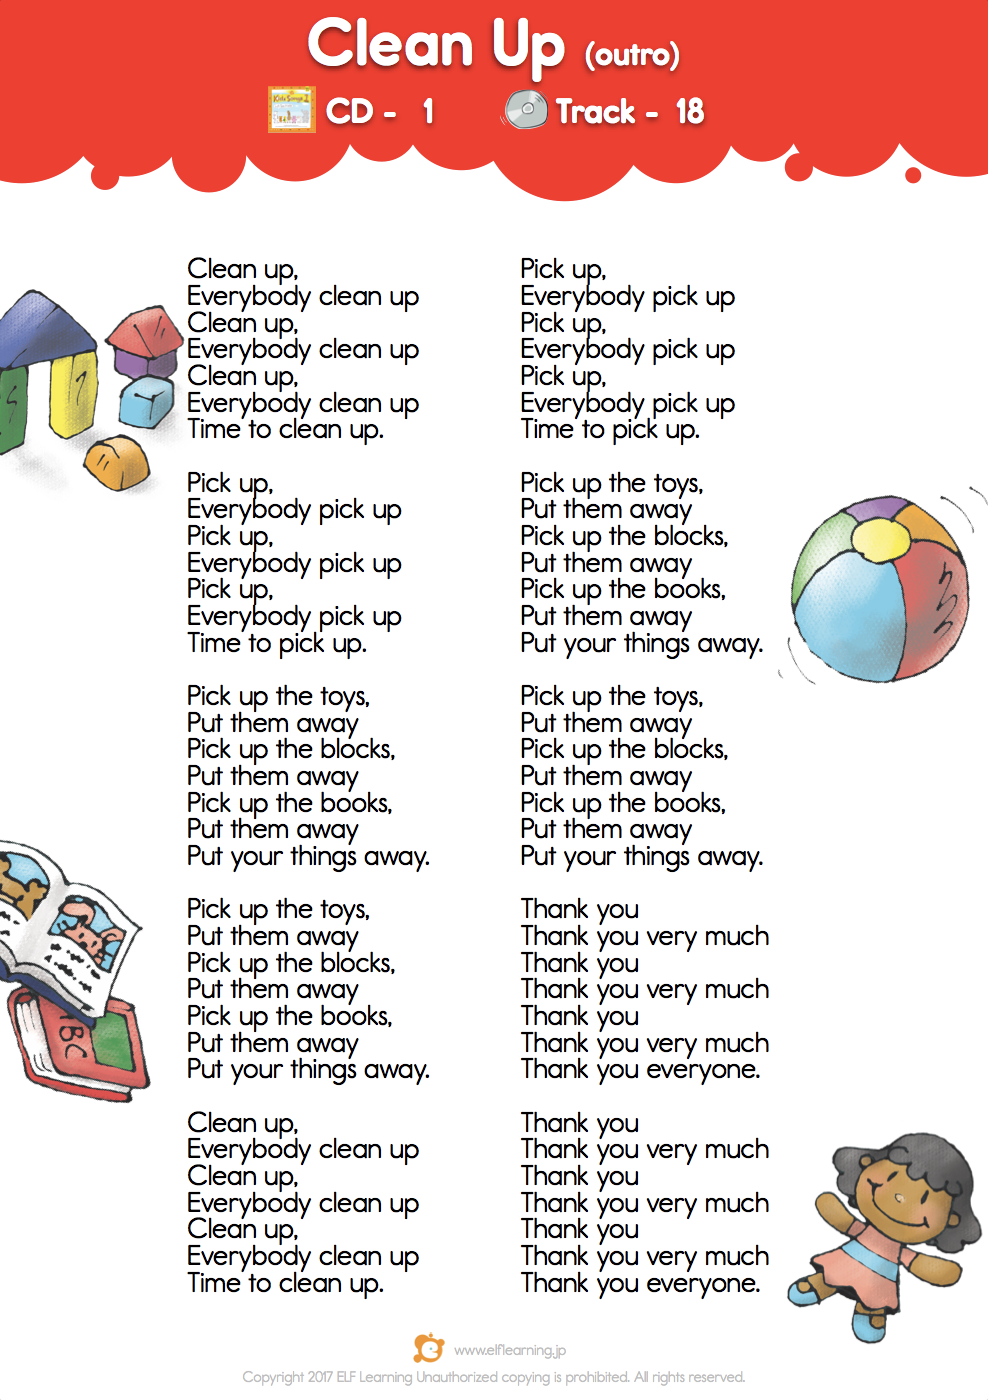 Kids songs 1 let 39 s take a walk clean up outro lyric for Music to clean to